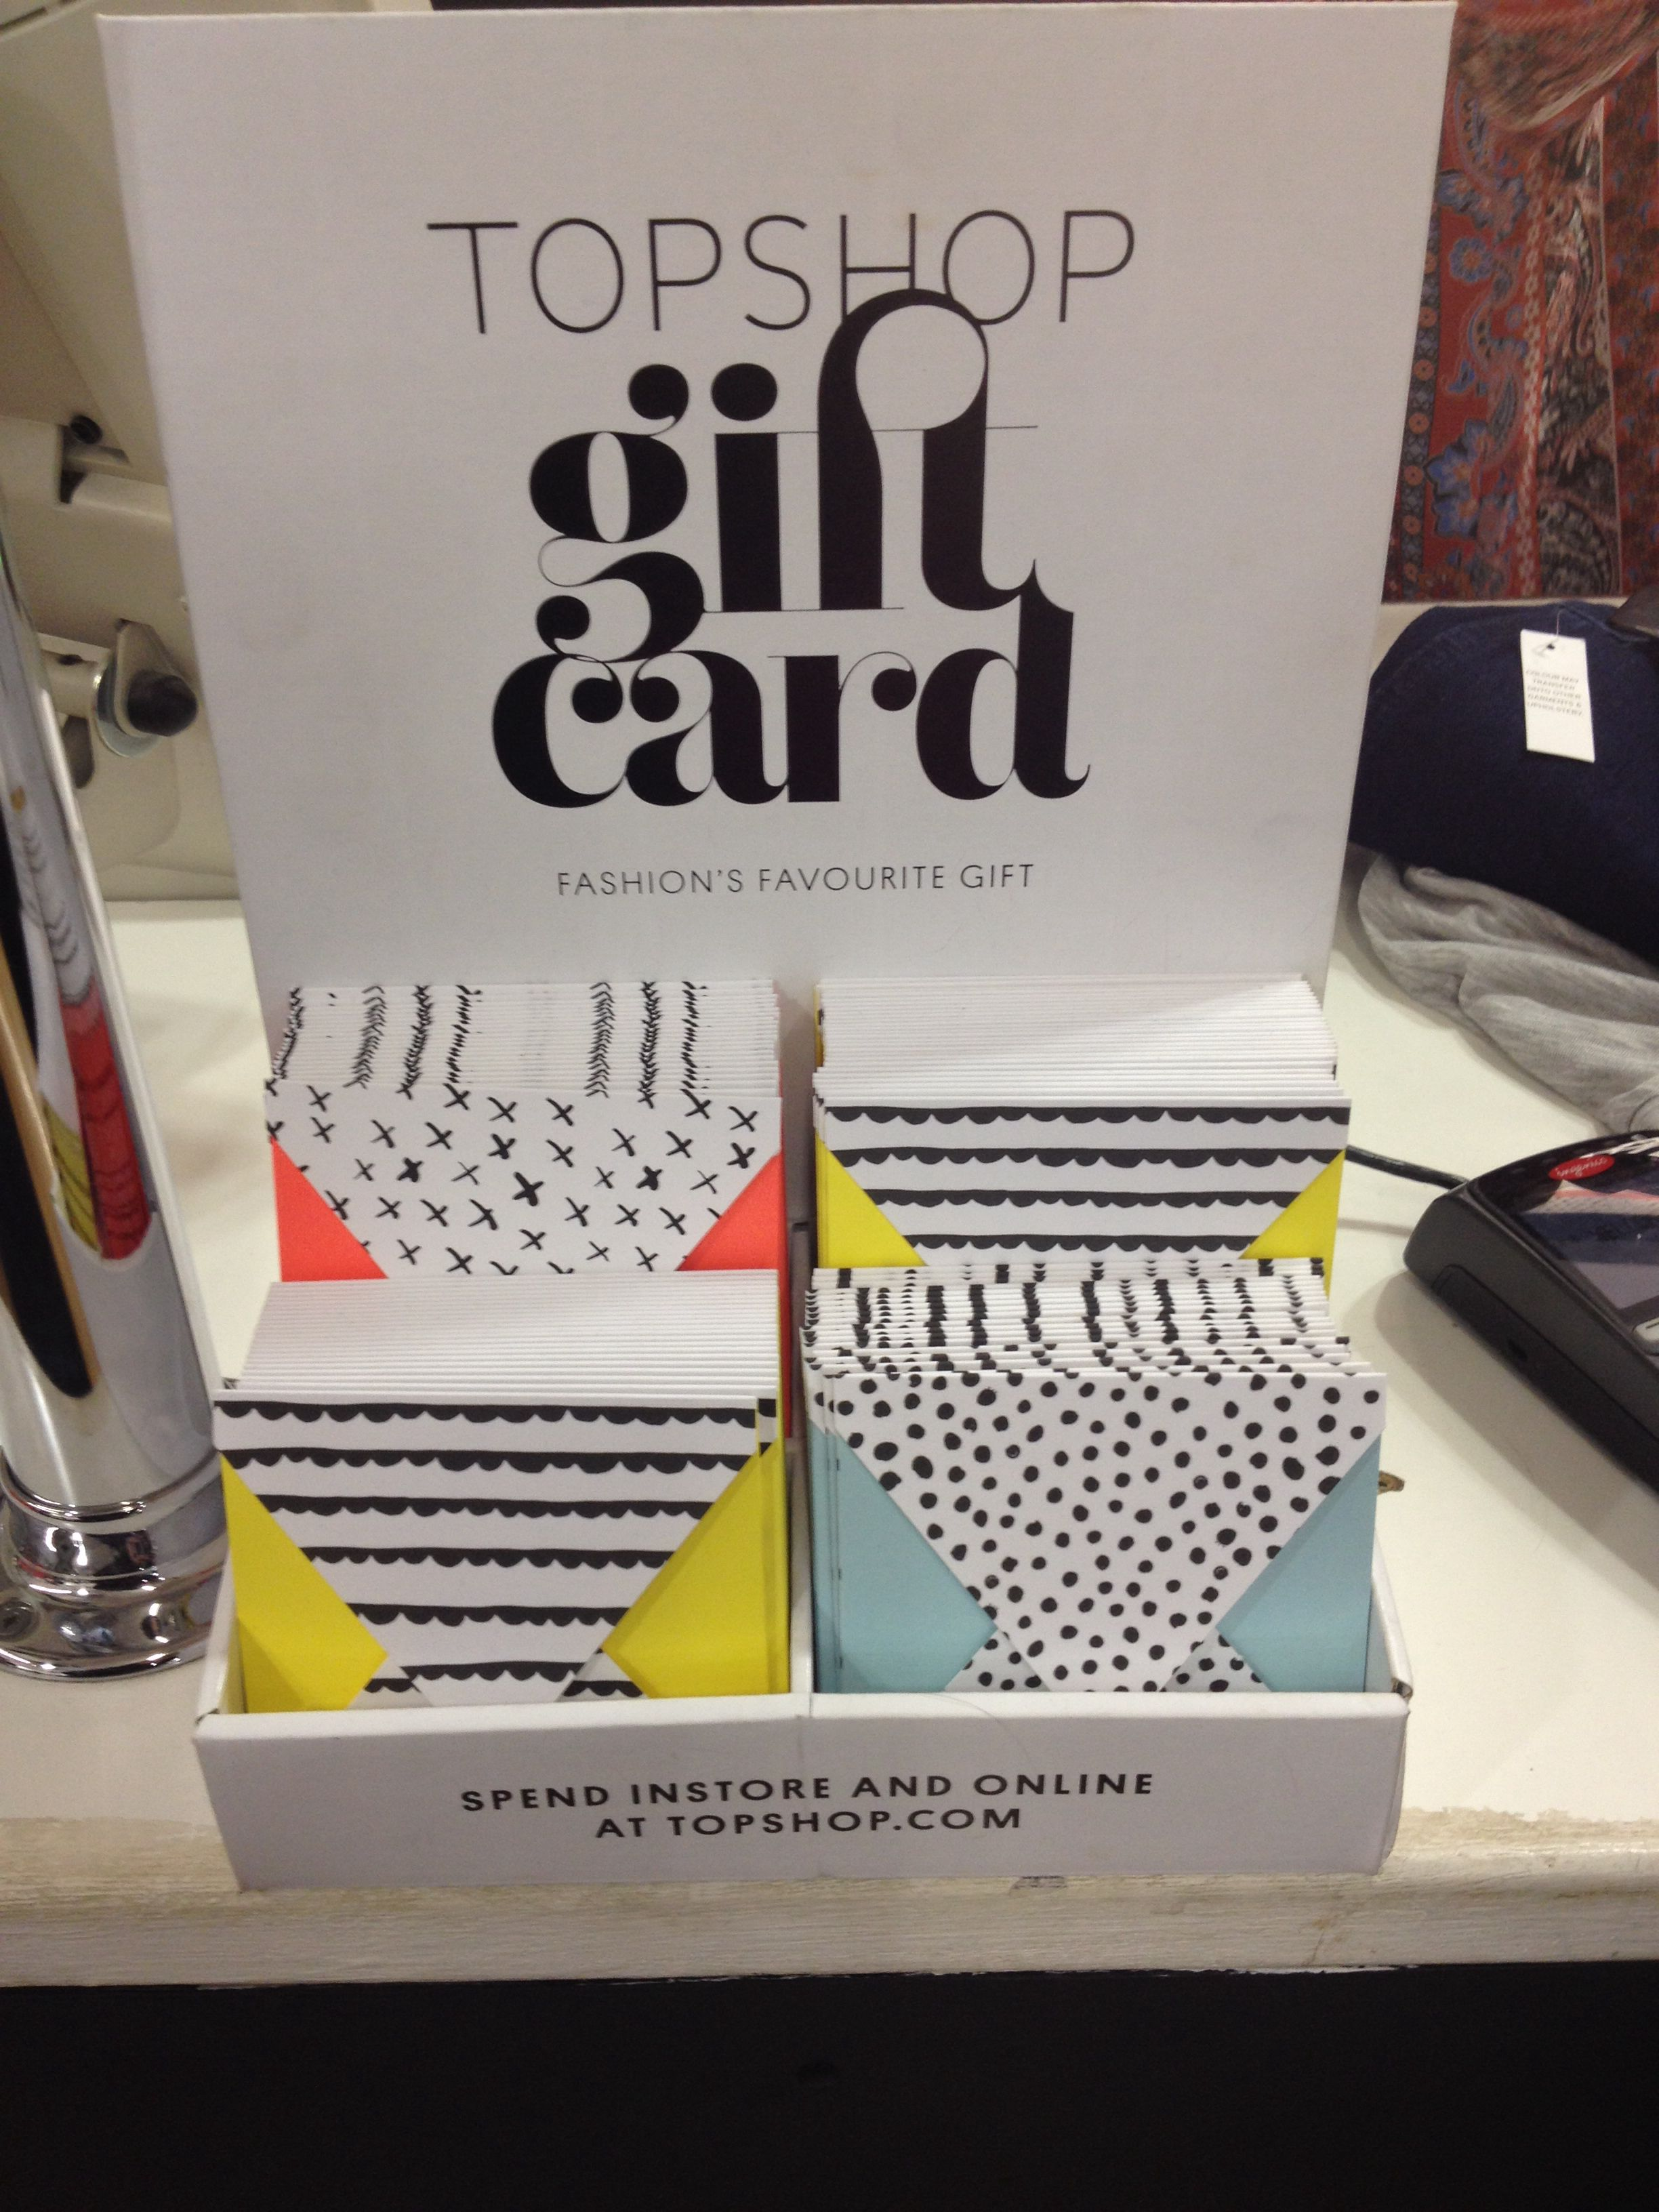 topshop gift card standard love top shop graphics gift cards new look river island topshop boots forever mac